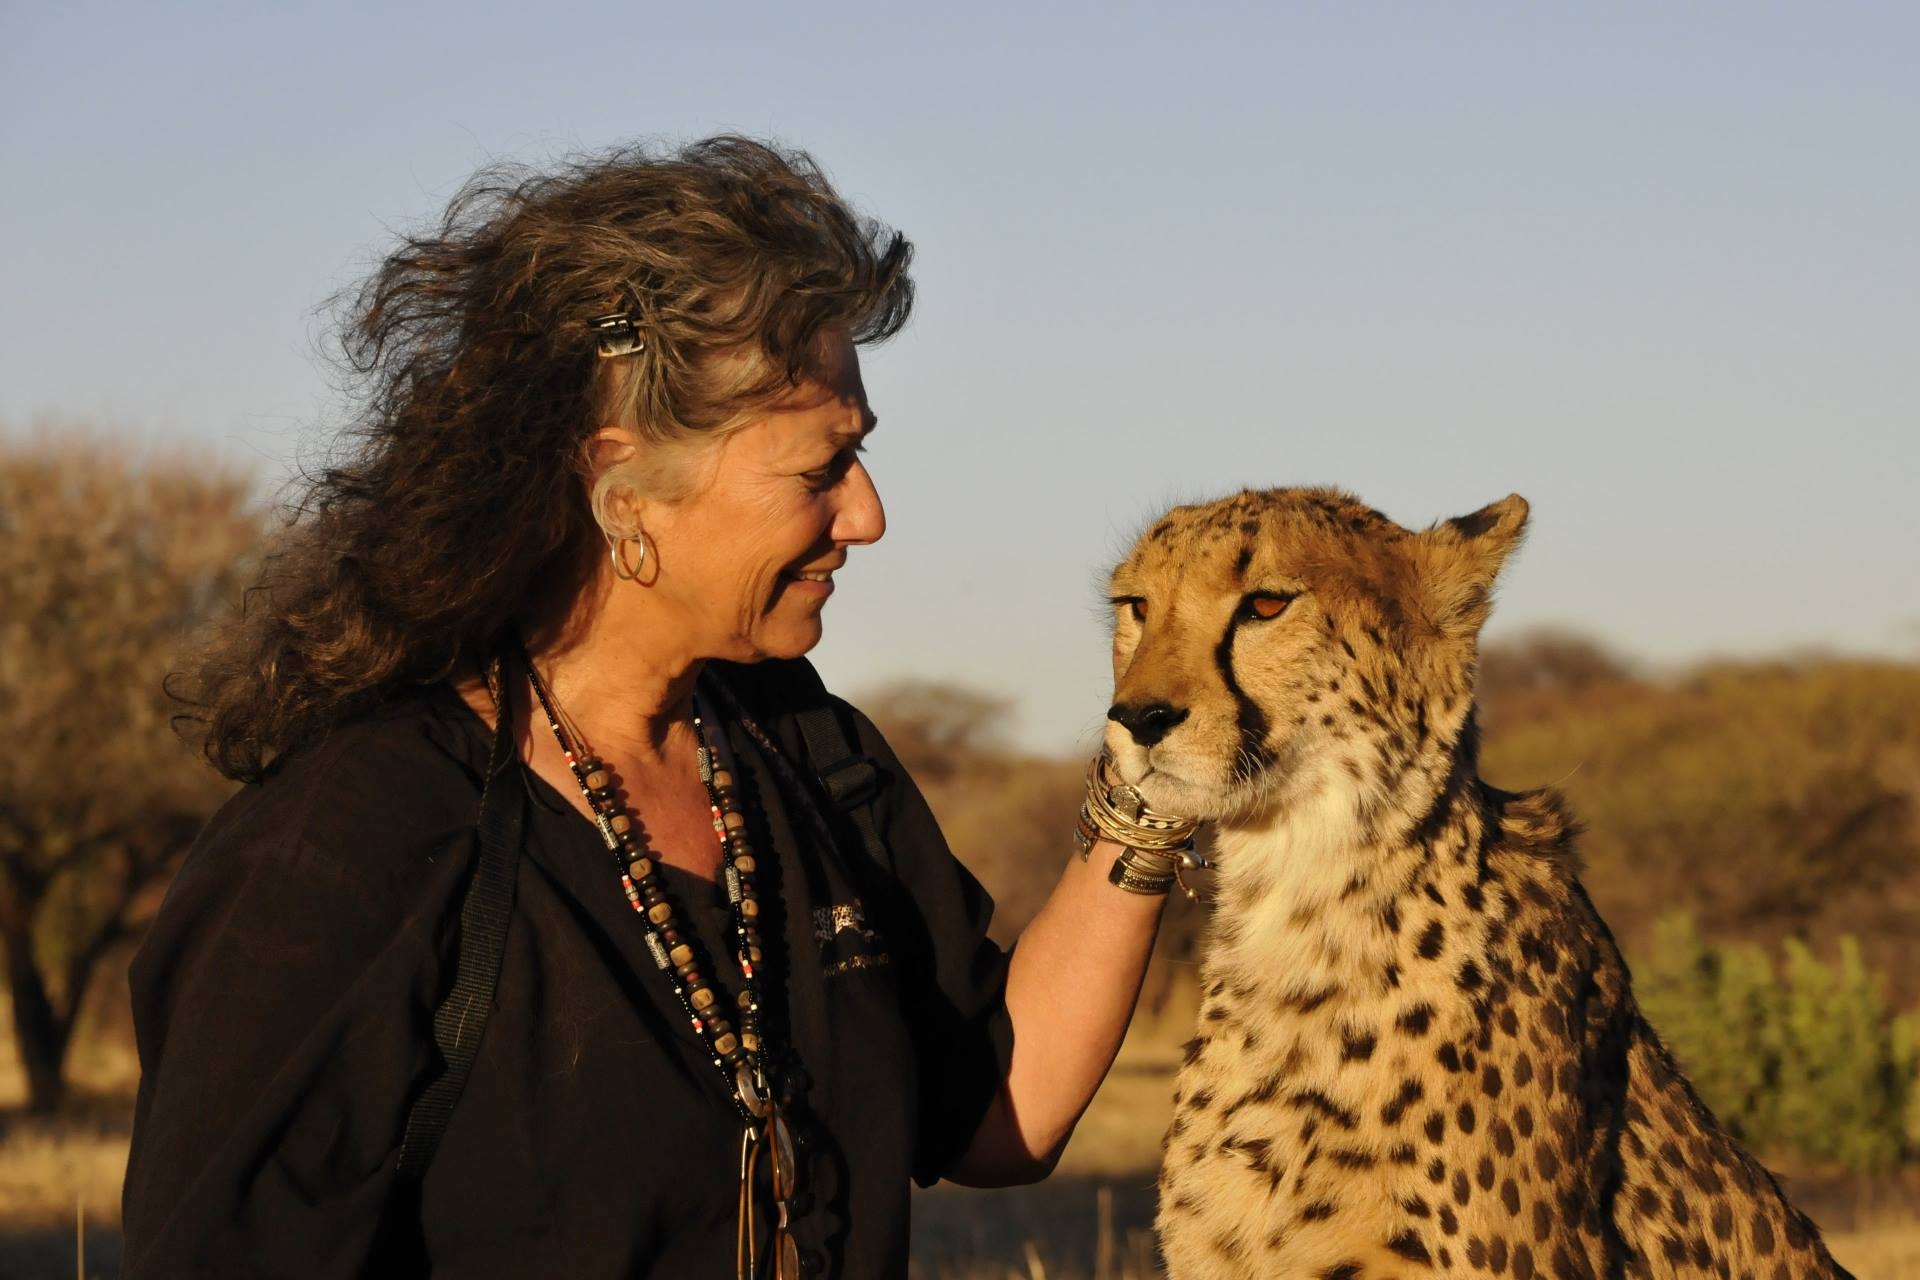 Laurie Marker with cheetah at Cheetah Conservation Fund (CCF)